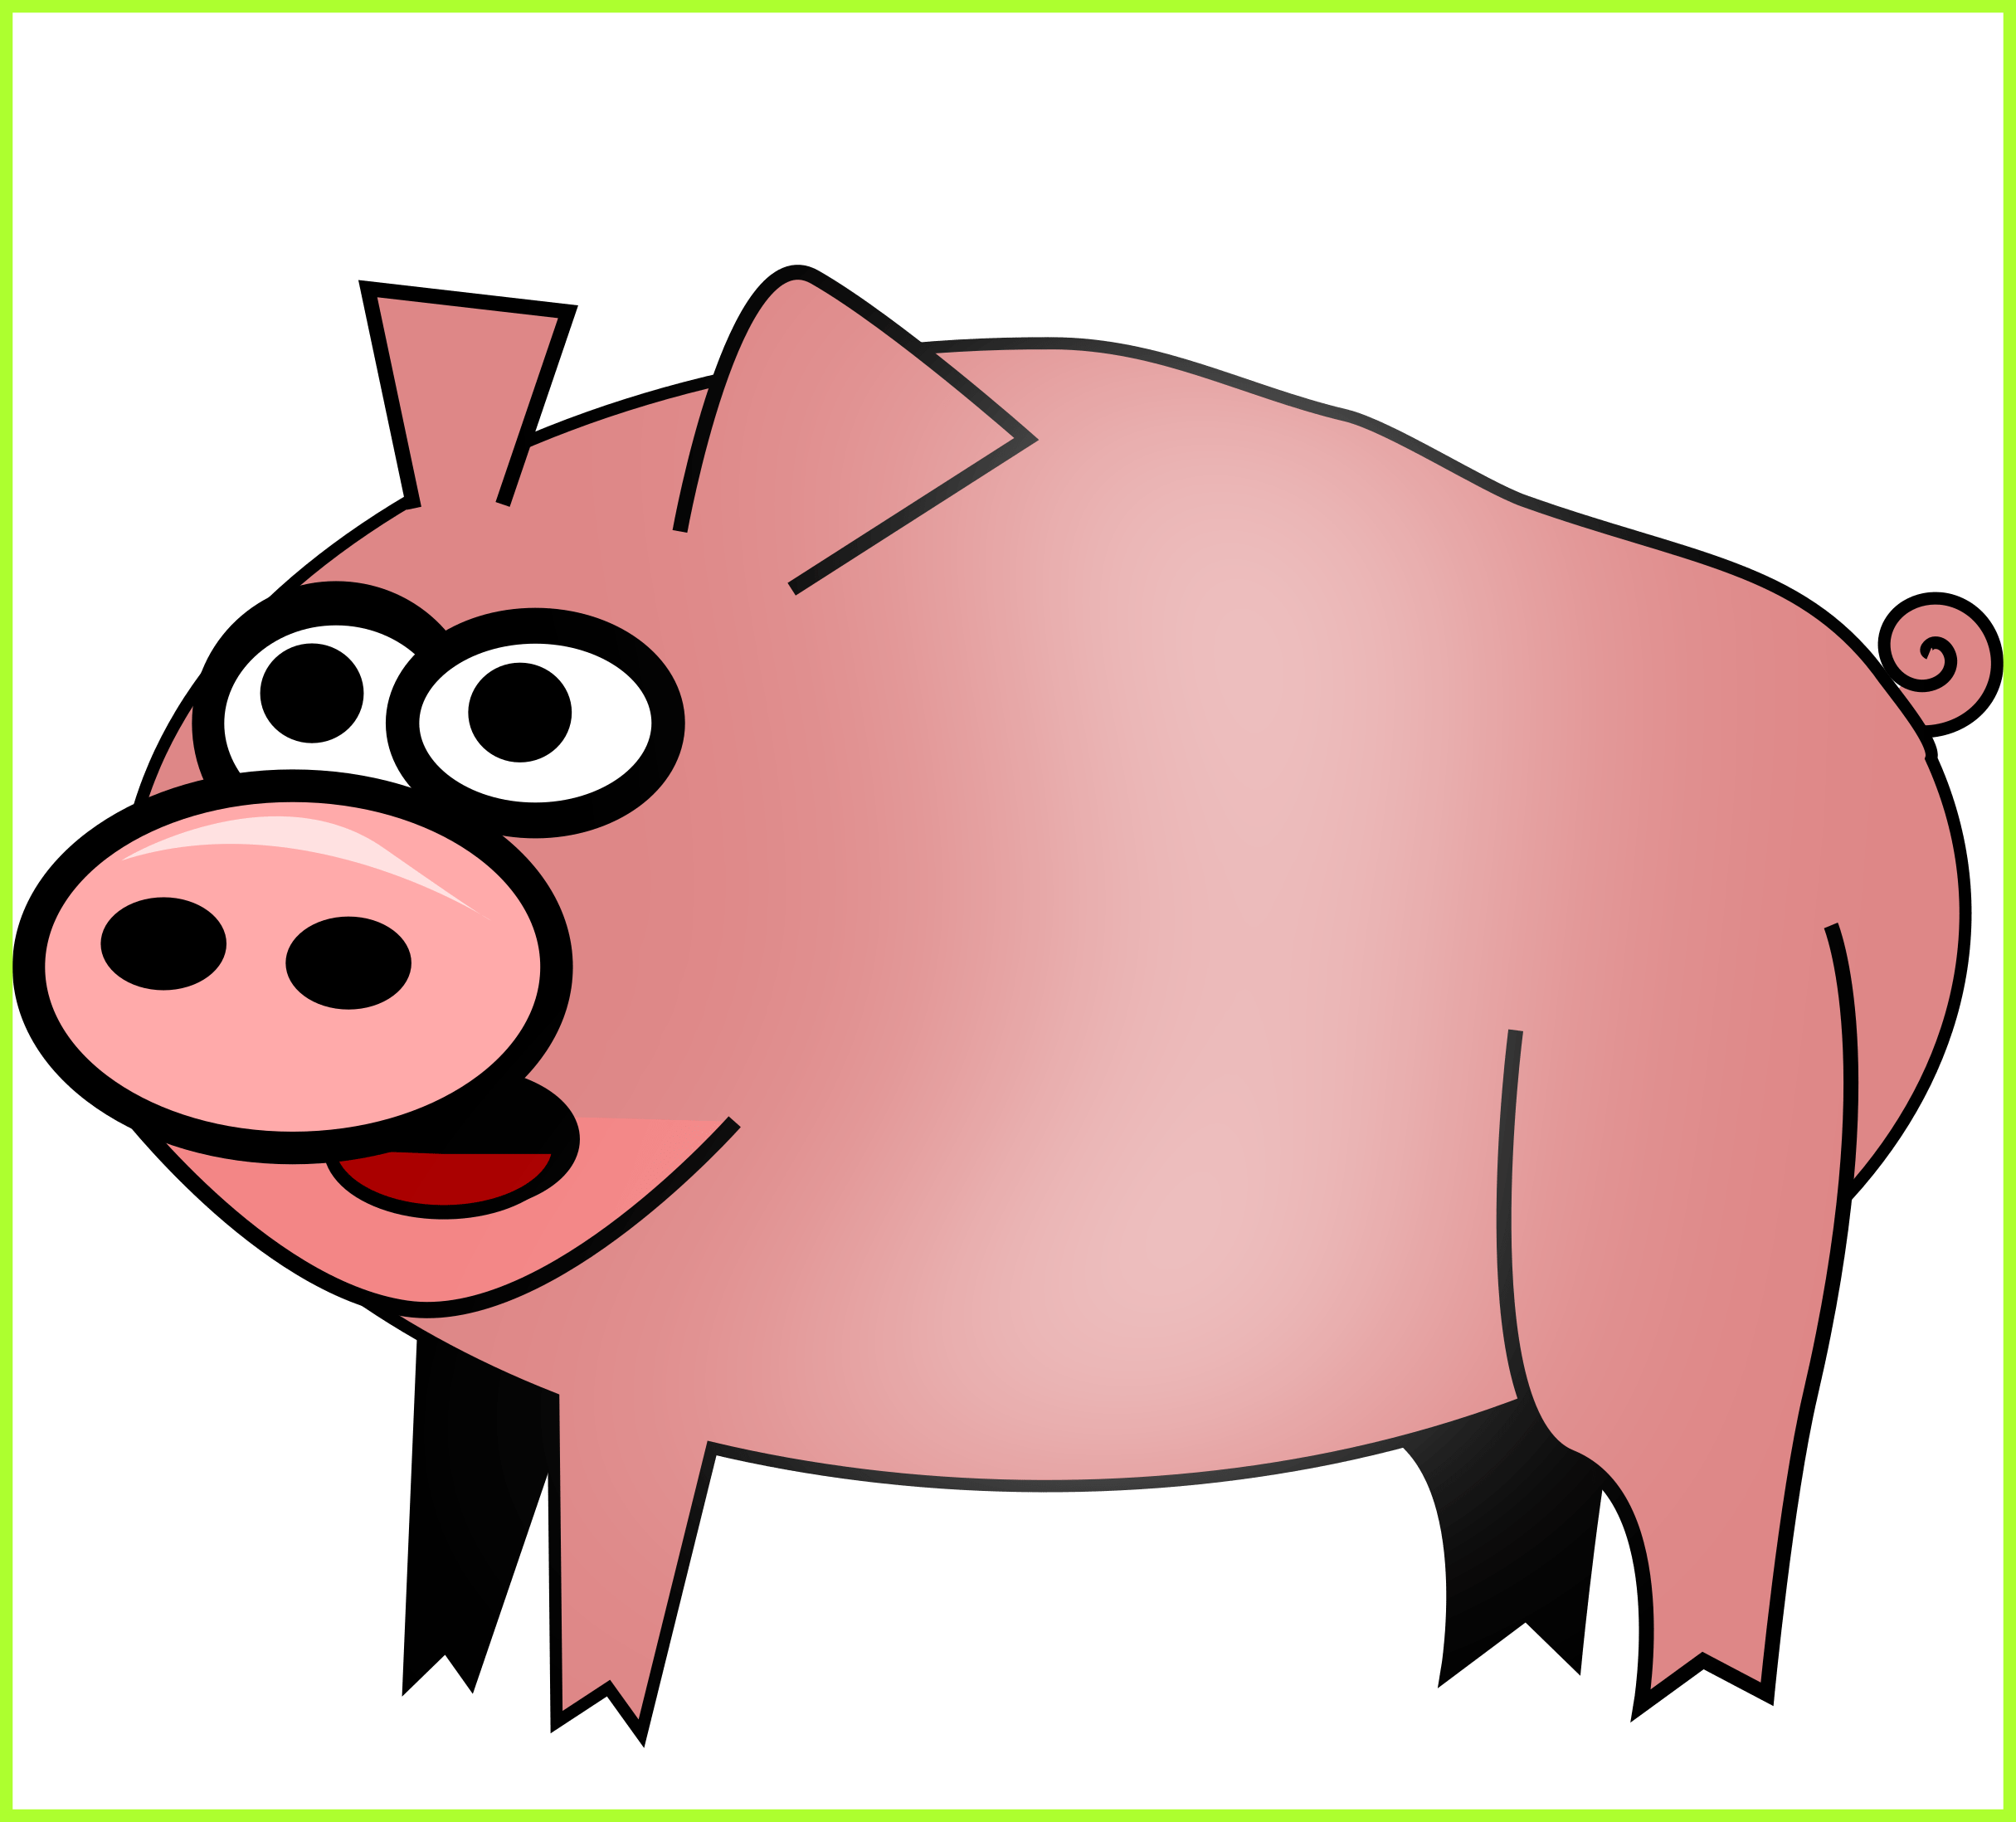 Flying at getdrawings com. Families clipart pig